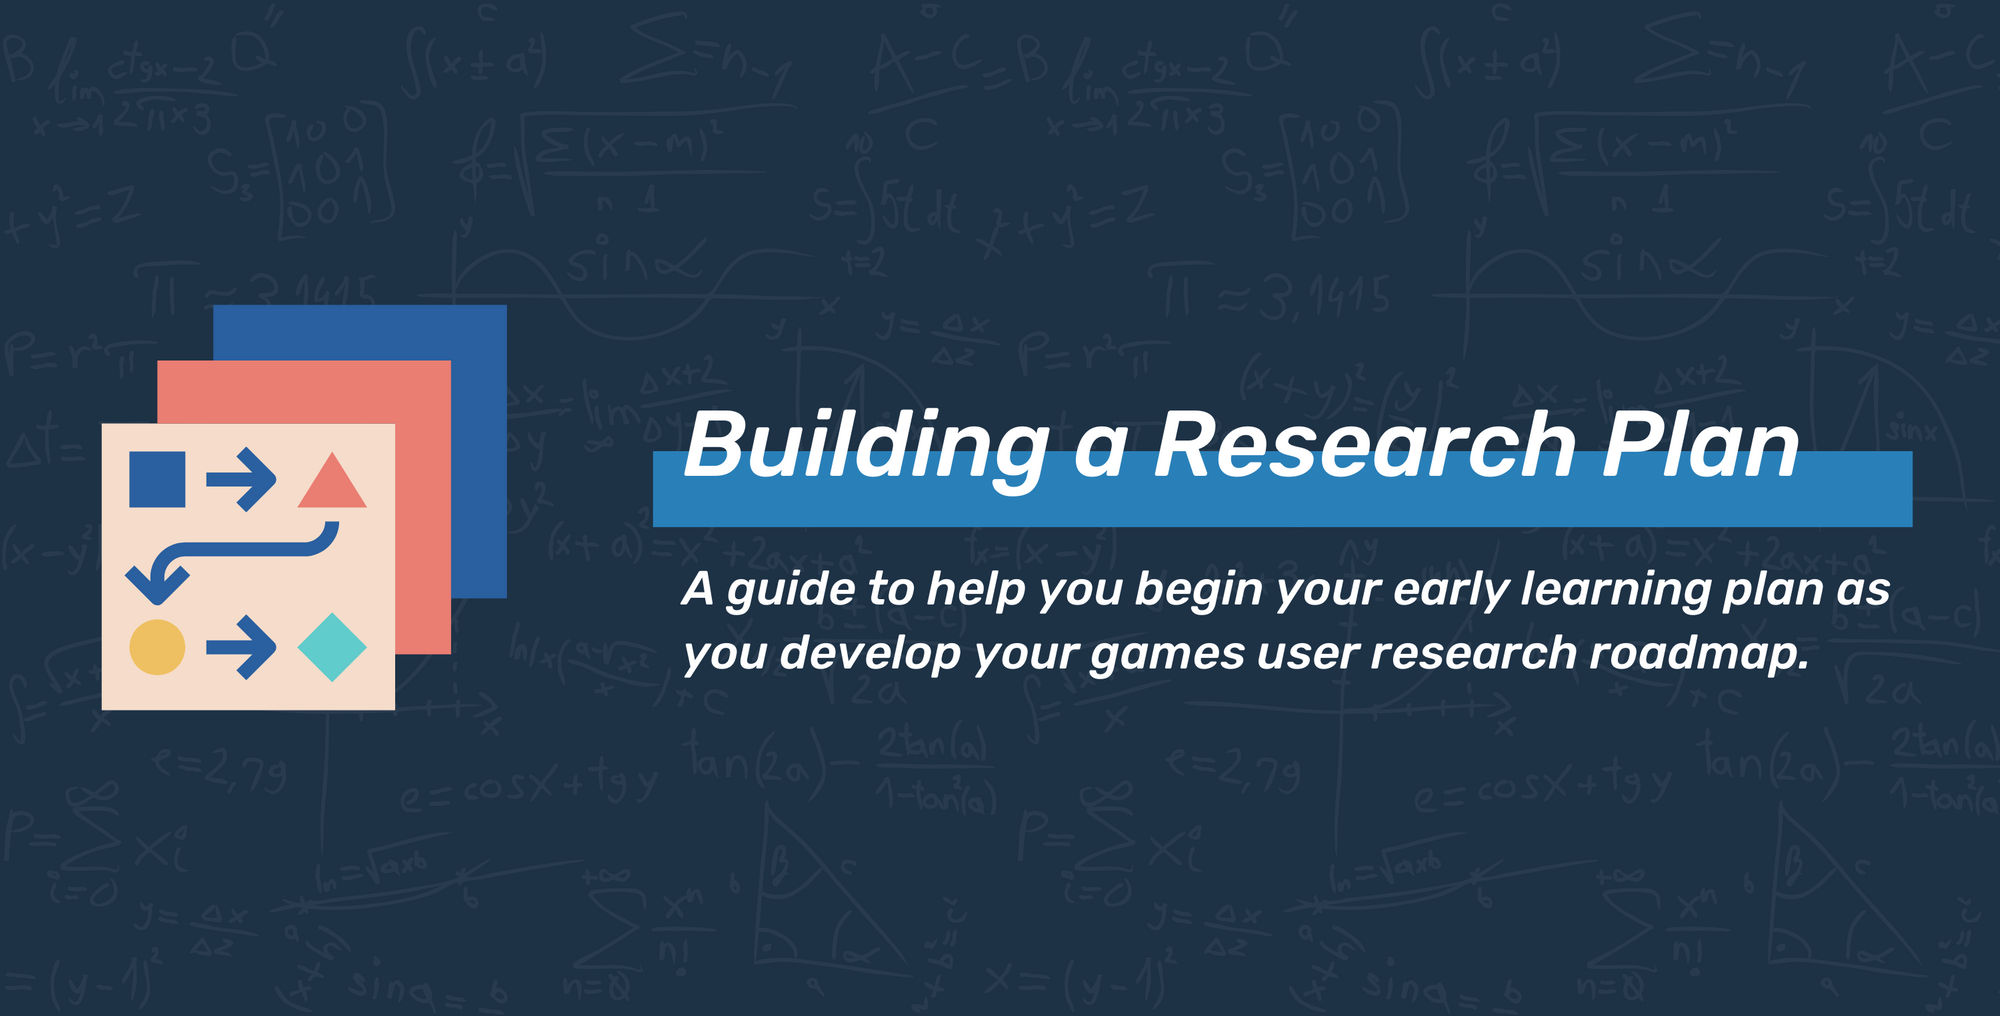 Learning Plans for Games User Research Roadmaps